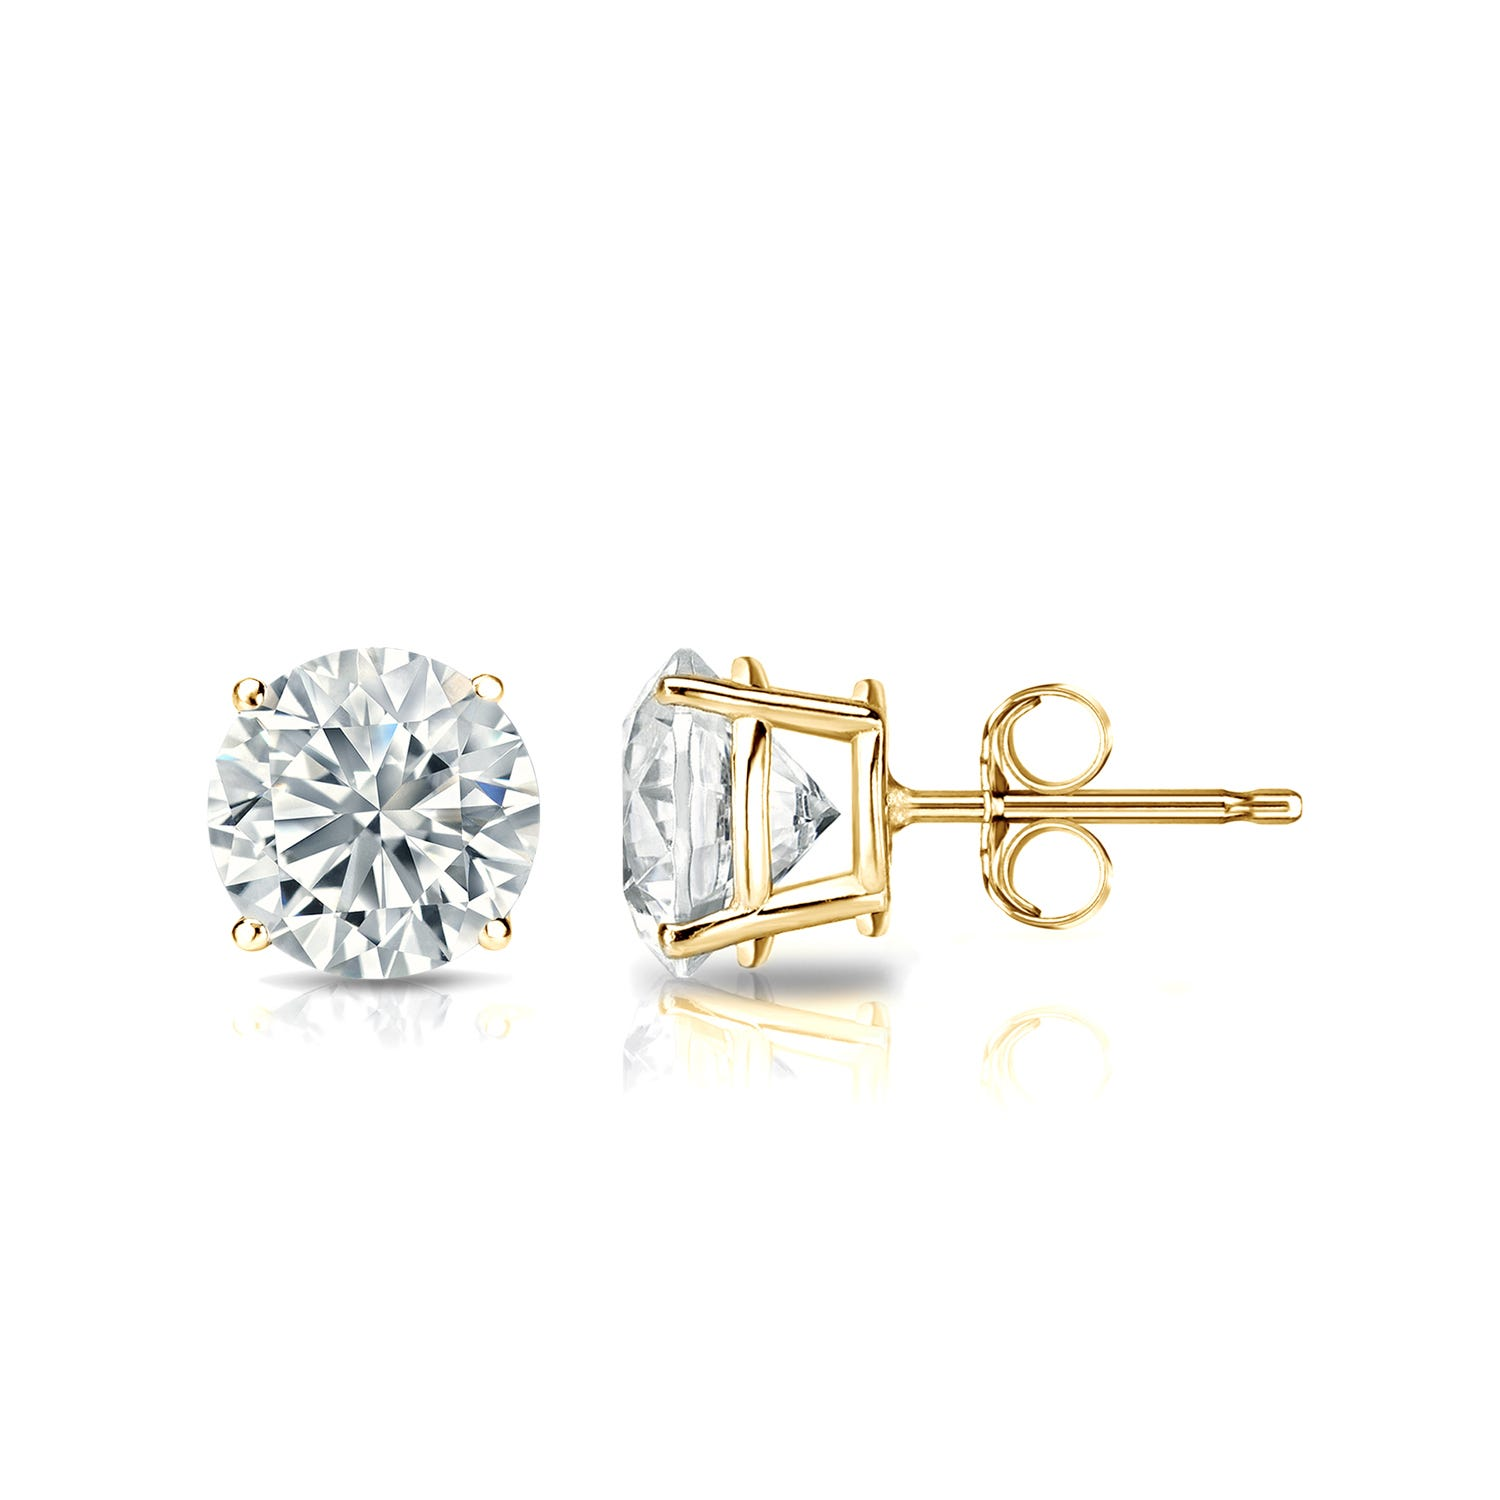 Diamond 1ctw. Round Solitaire Stud Earrings (I-J, I2) 14k Yellow Gold